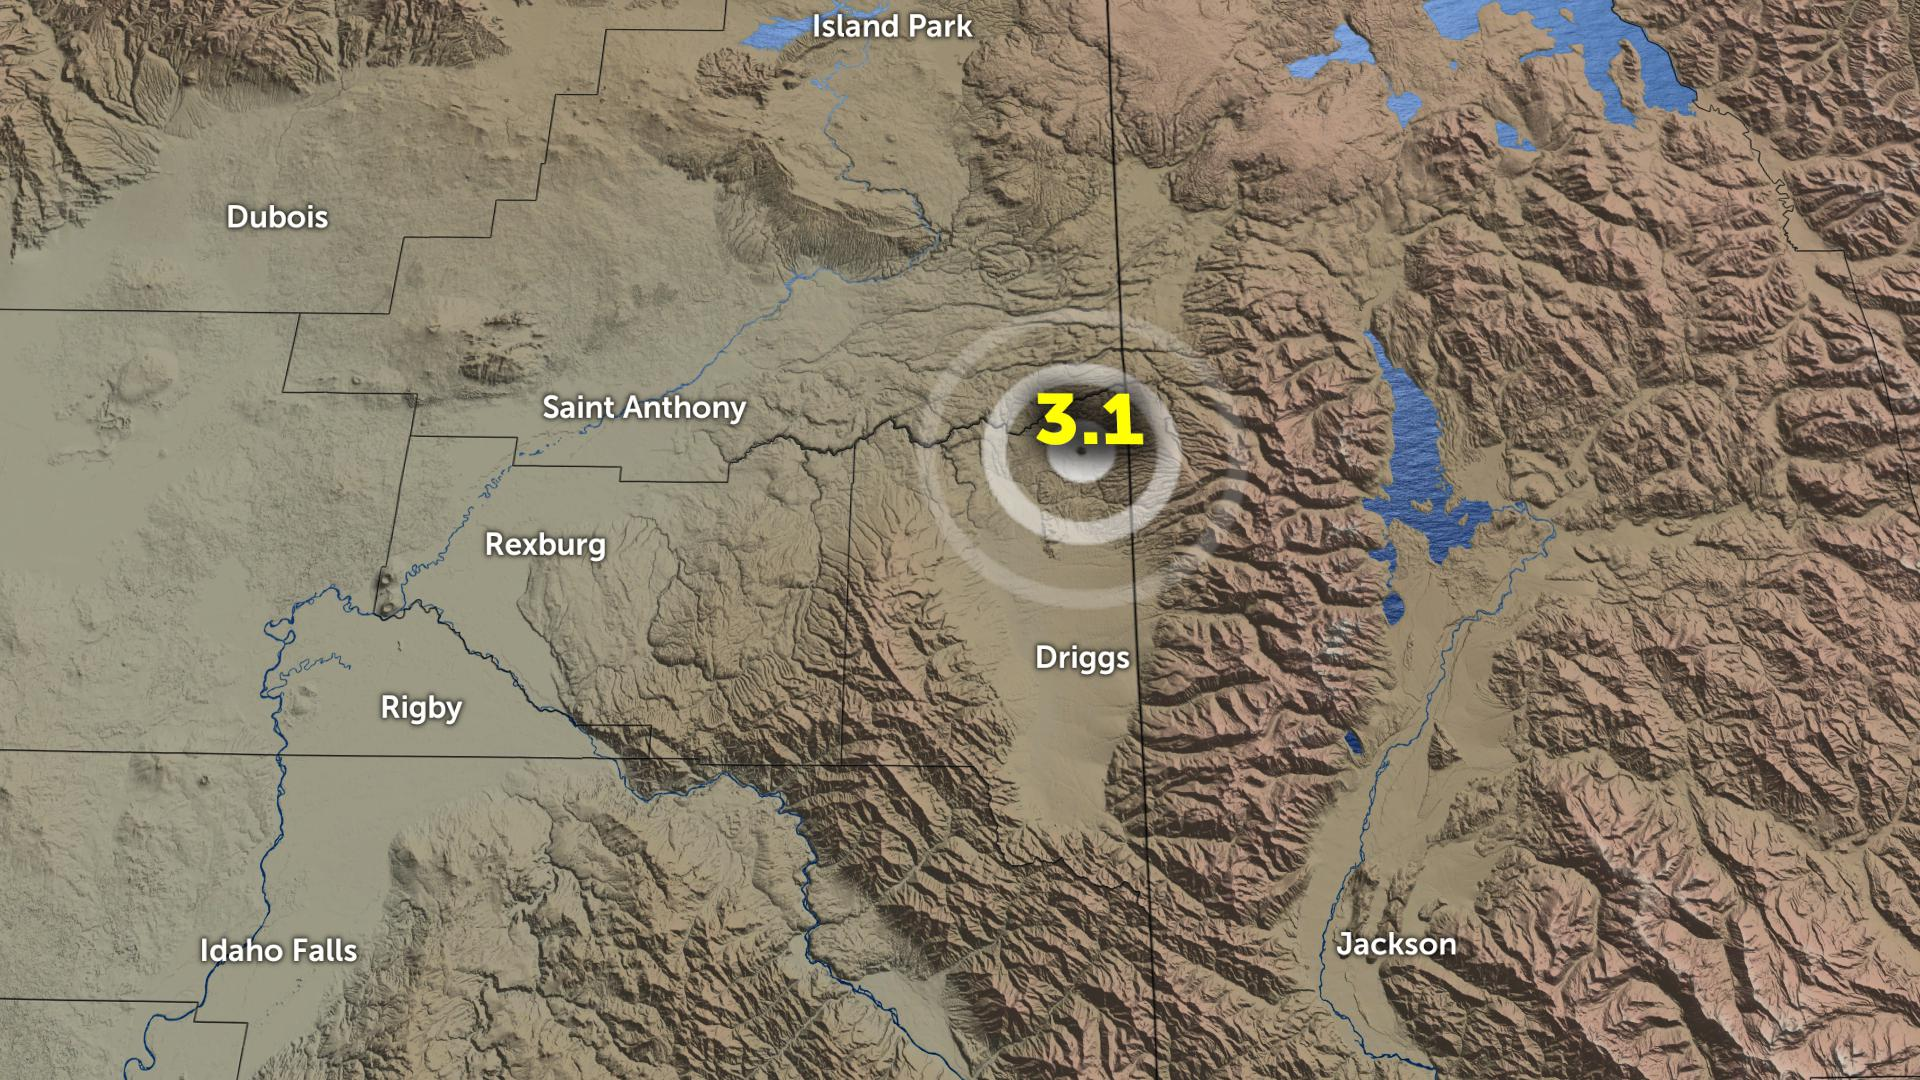 123019 earthquake near Driggs, Idaho